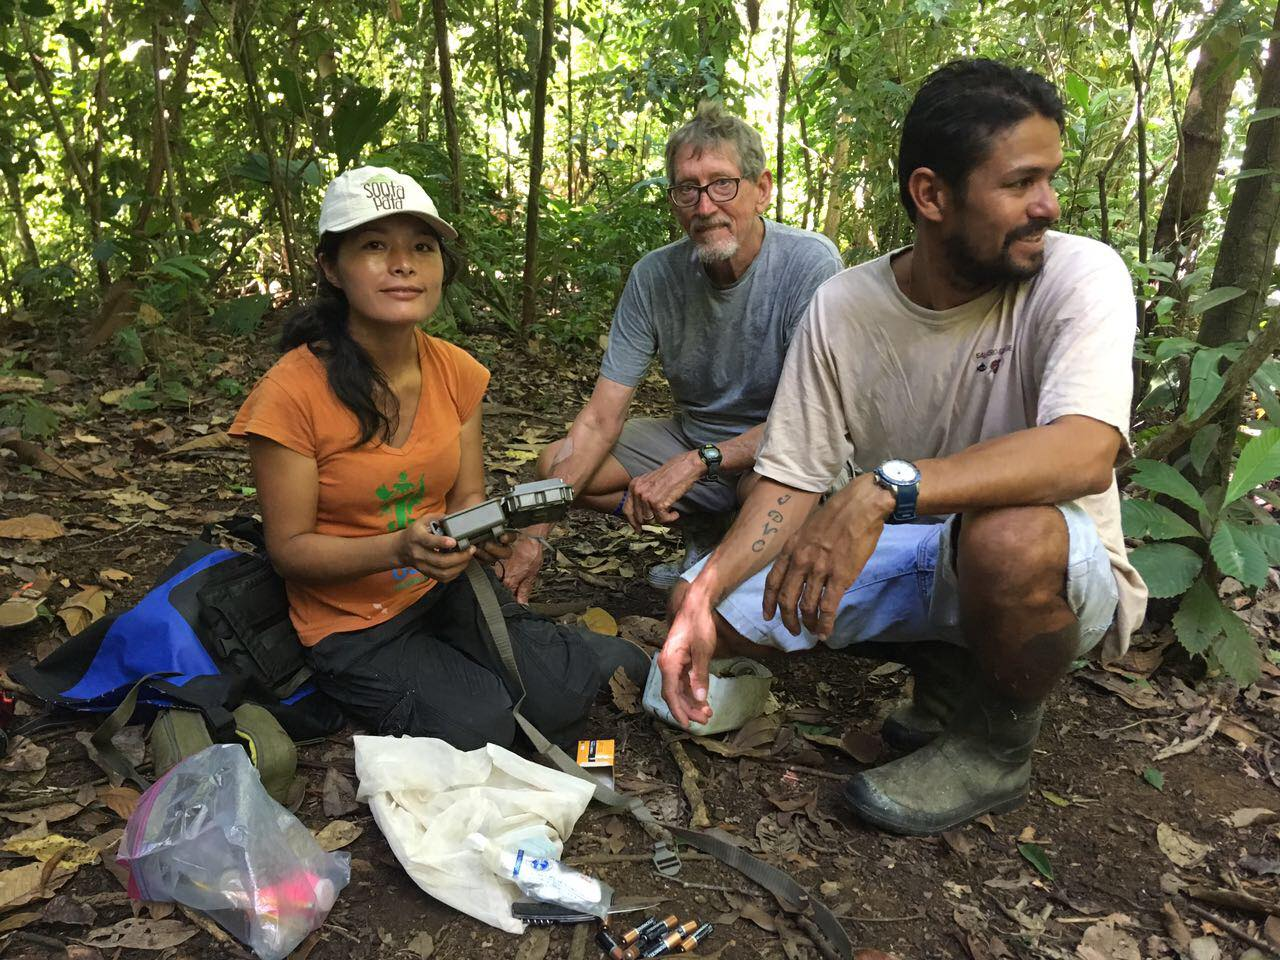 OC biologist Ruthmery Pillco Huarcaya accompanying Saladero Eco-Lodge owner Harvey Woodard and boat captain David on the edge of Piedras Blancas National Park installing camera traps.